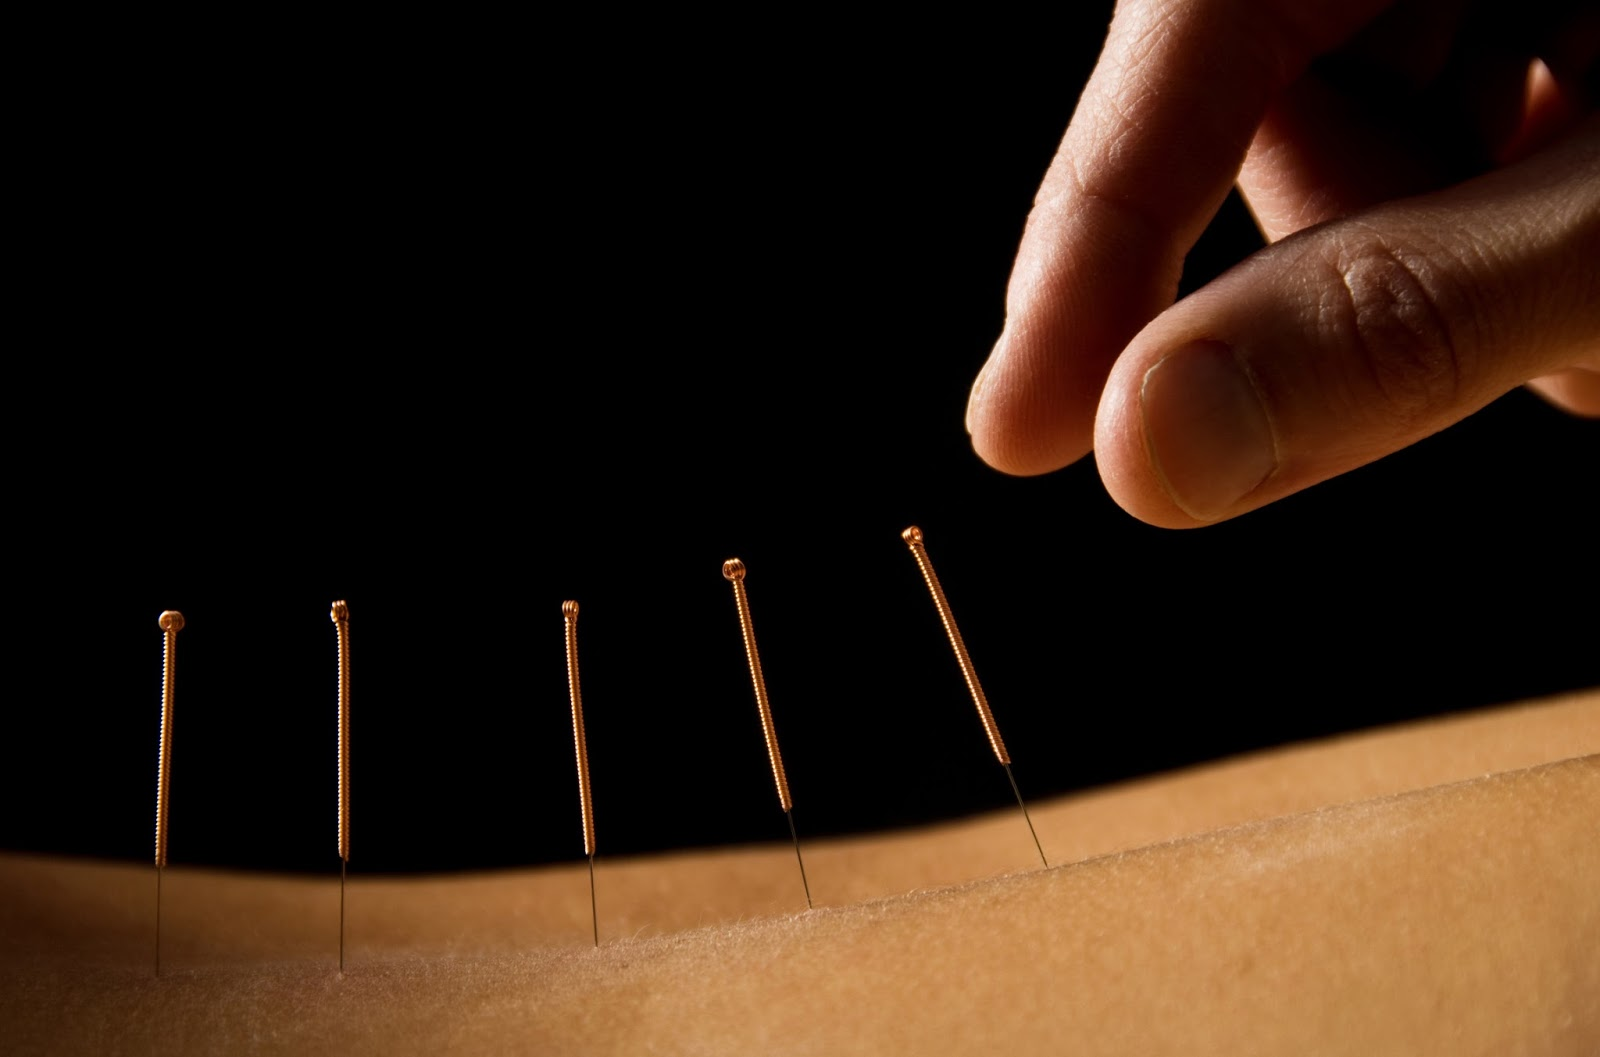 acupuncture aculift methode celine claret coquet avis test